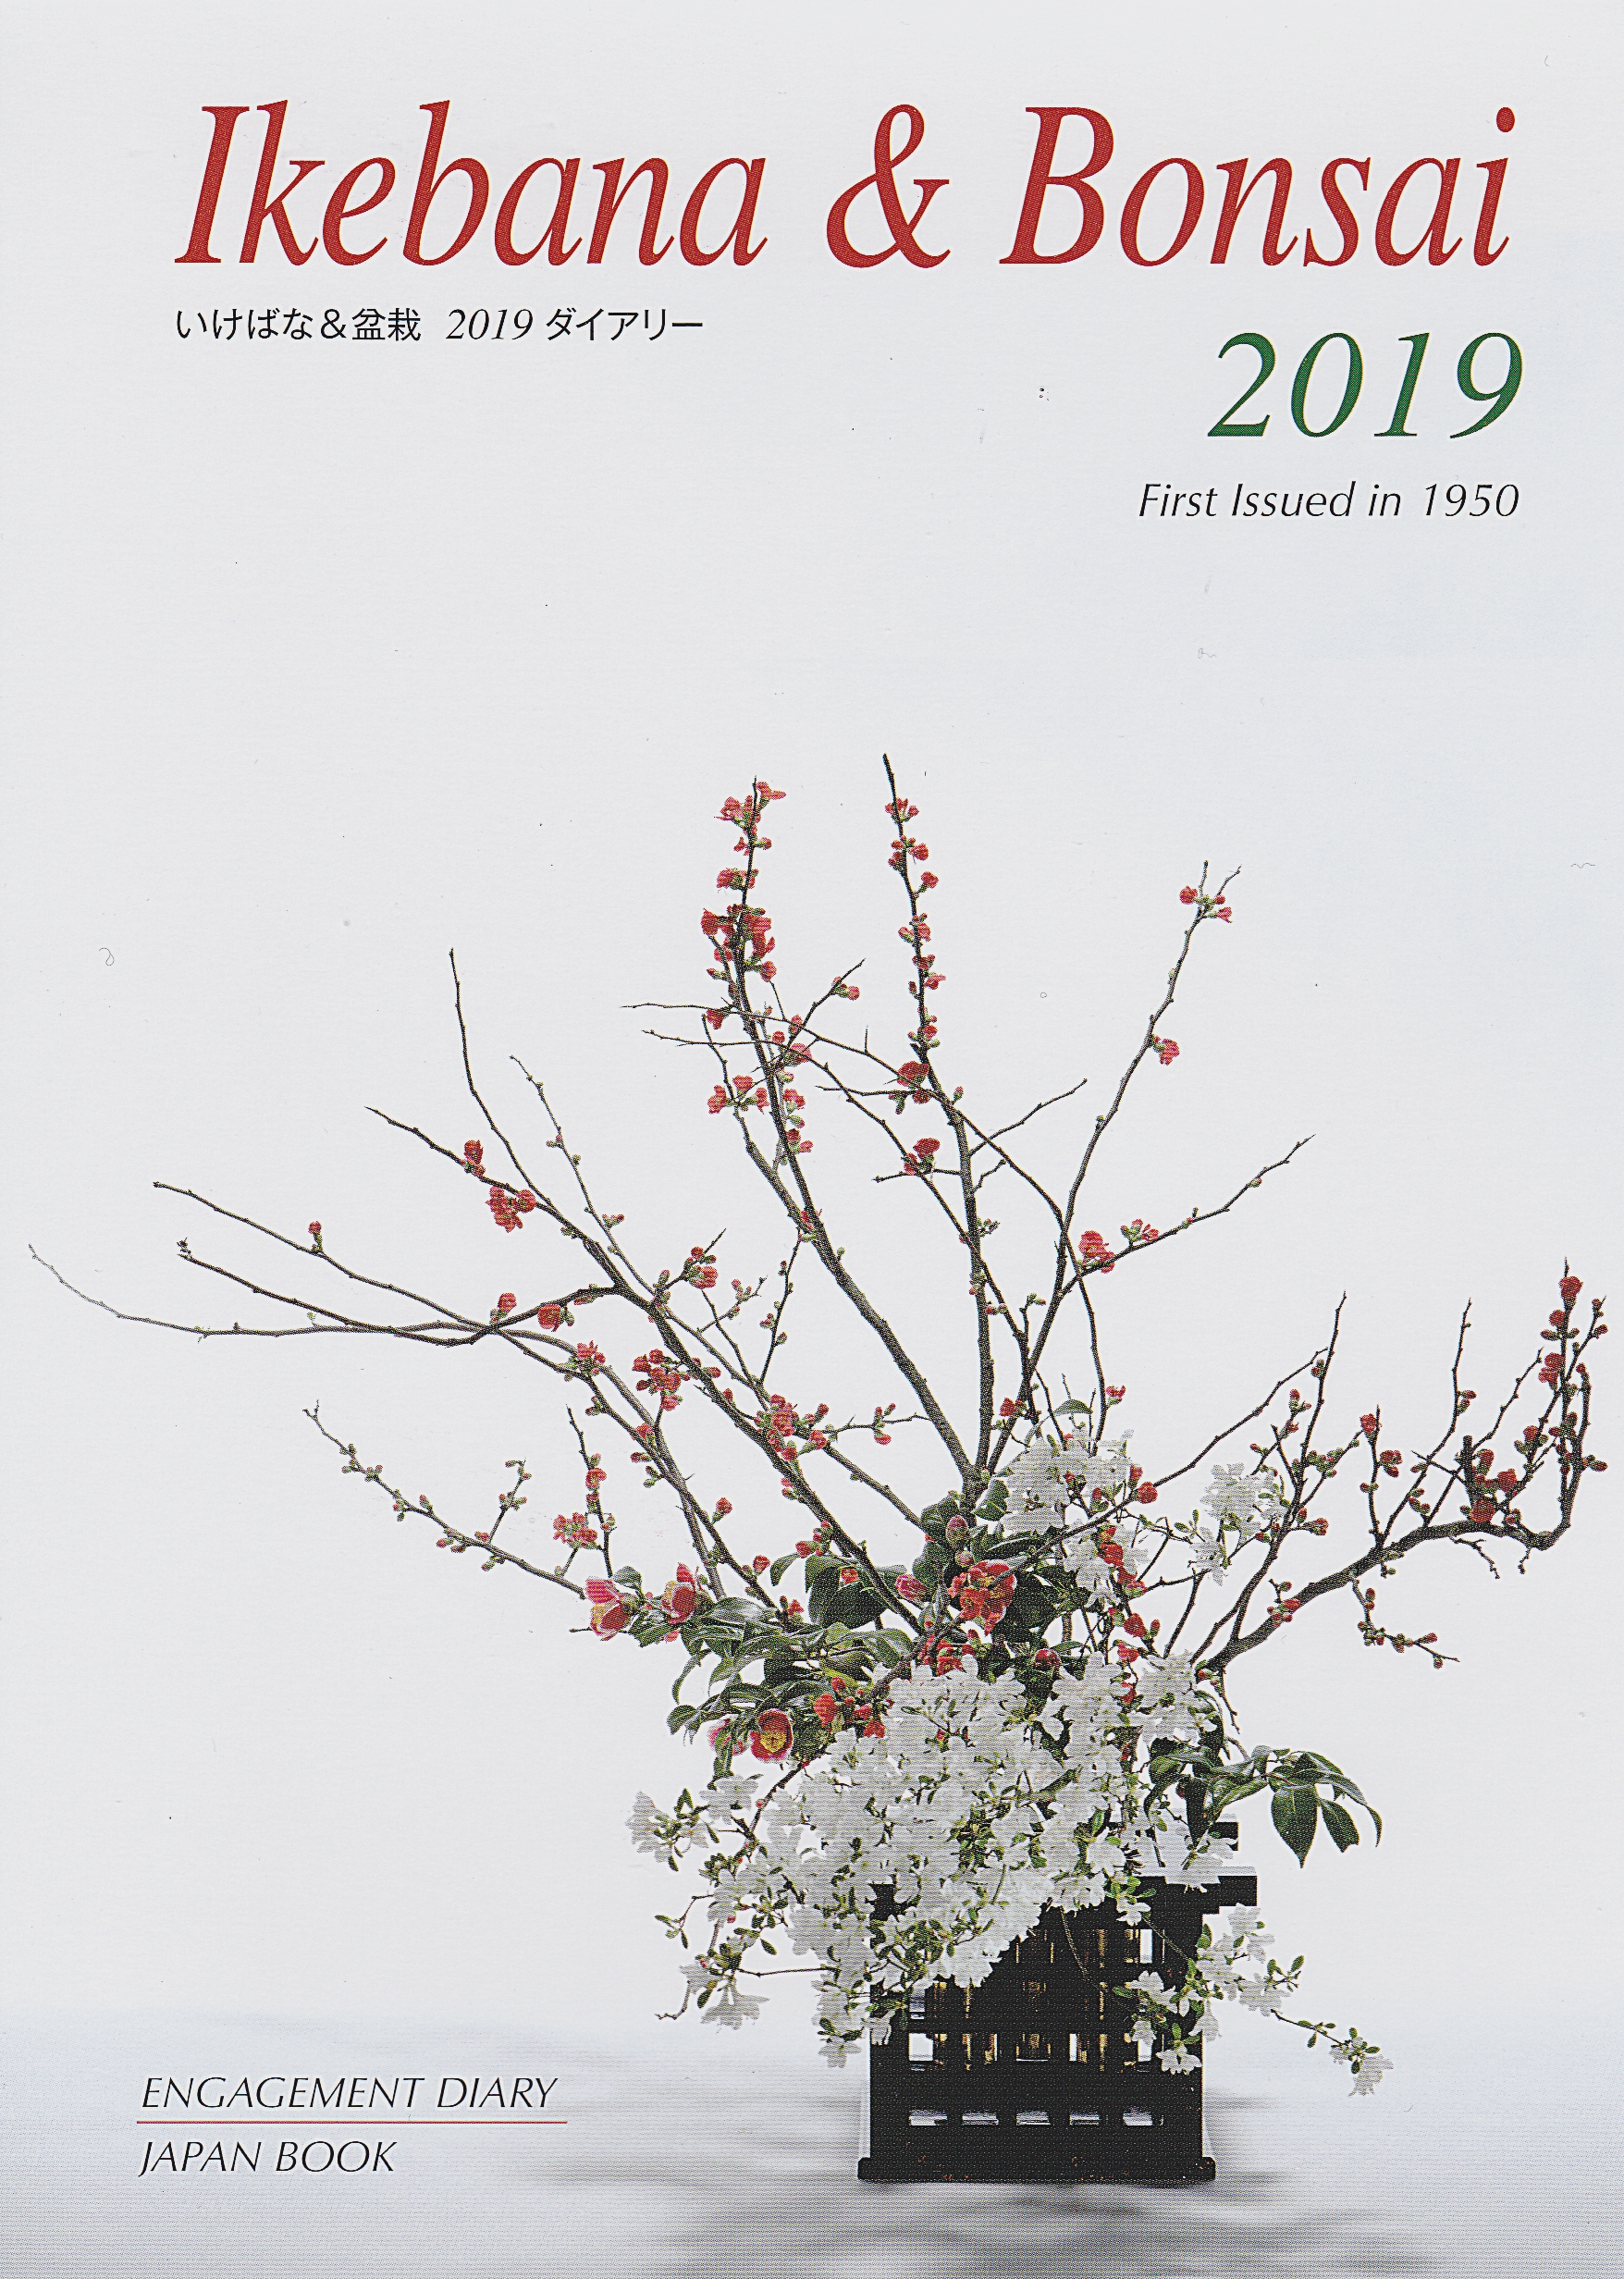 Ikebana & Bonsai Engagement Diary 2019